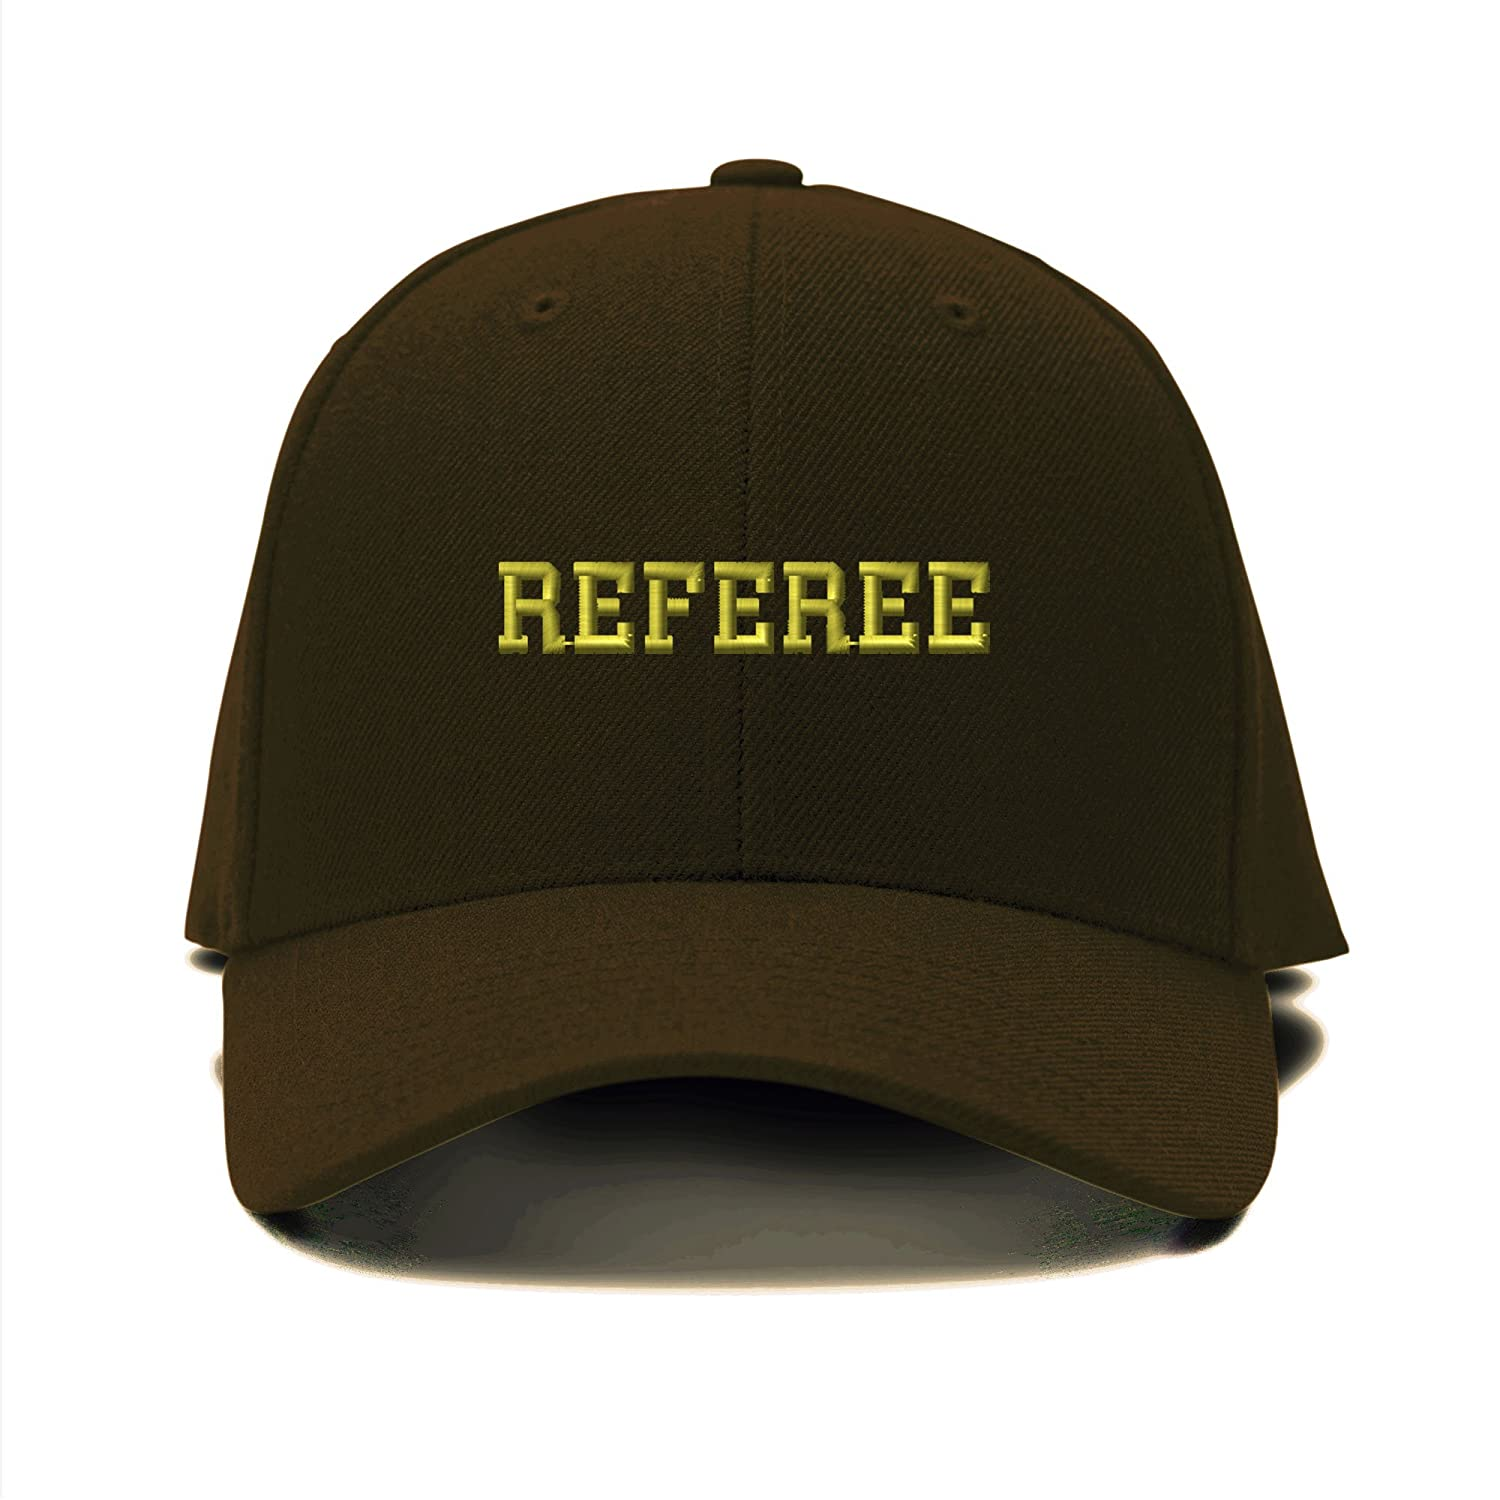 54bdbe44c02 Amazon.com  Speedy Pros Referee Soccer Football Embroidery Adjustable  Structured Baseball Hat Brown  Clothing